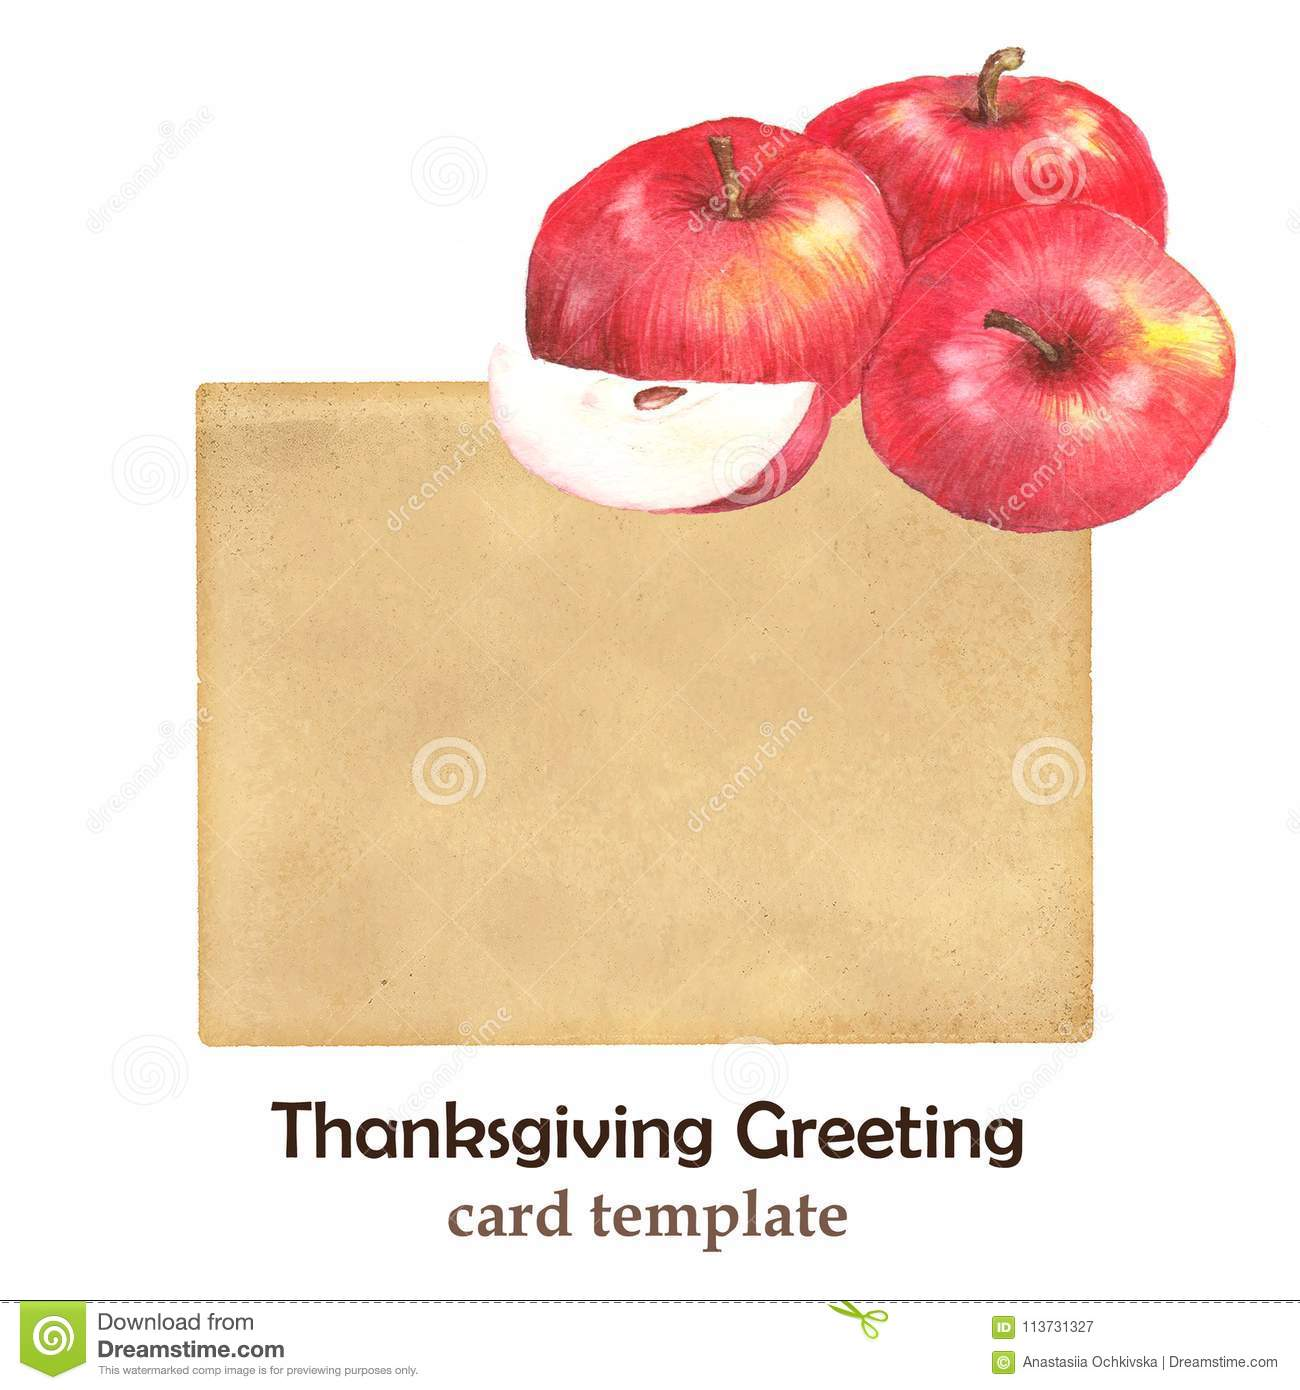 hand drawn illustration of red apples on the old paper card stock